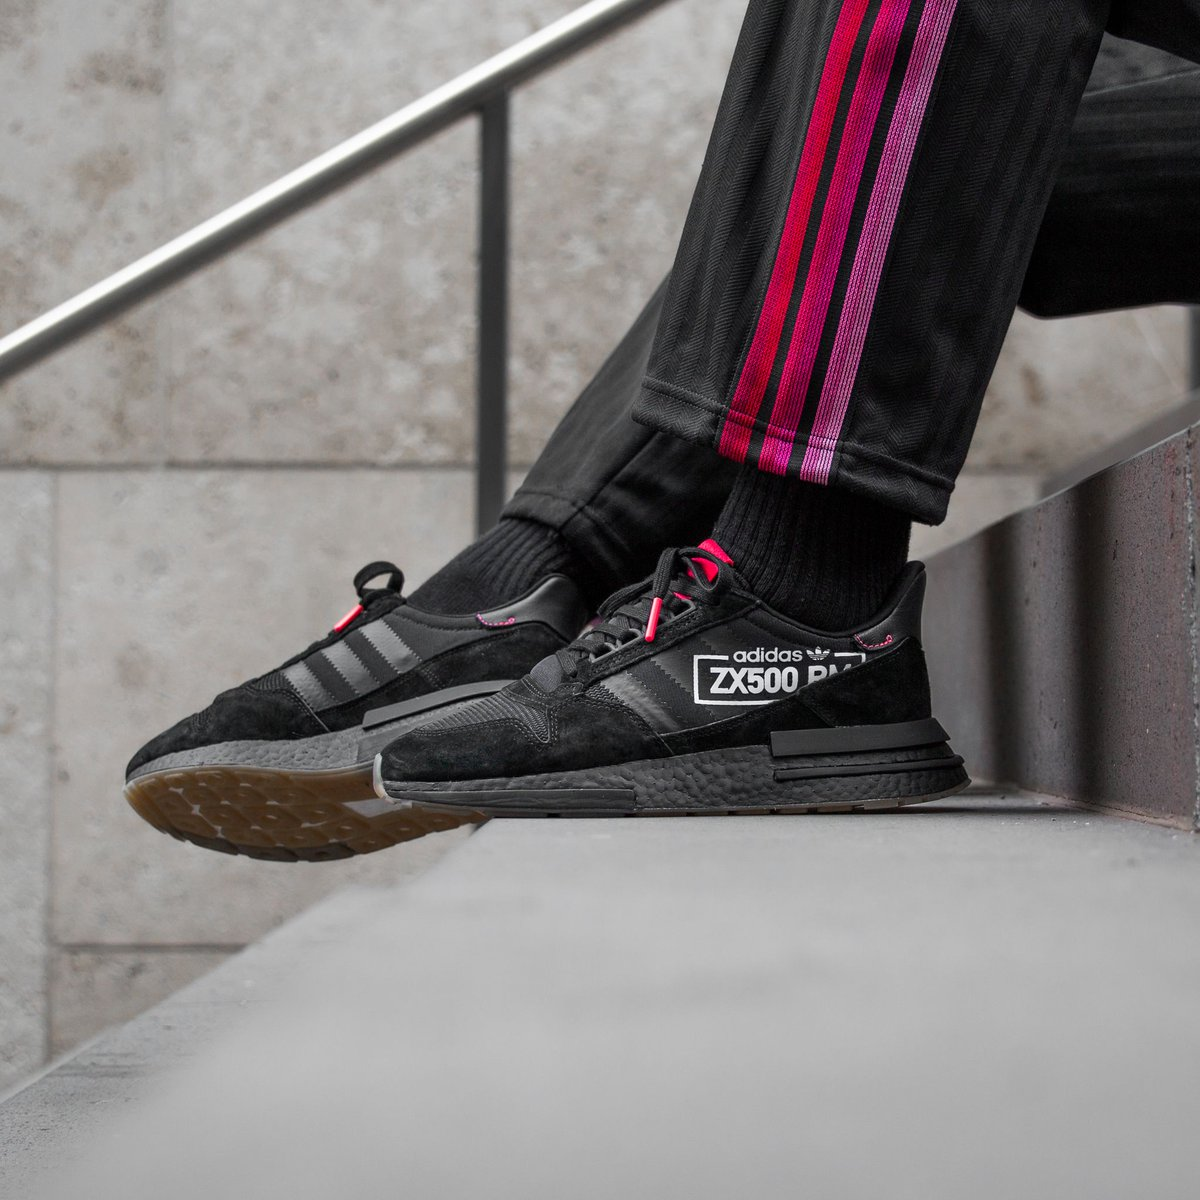 new style 25829 efd77 ONLINE NOW! Adidas Zx 500 Rm - Core BlackCore BlackFlash Red SHOP HERE  httpbit.ly2u0VwPn pic.twitter.comoJalKjwBiF